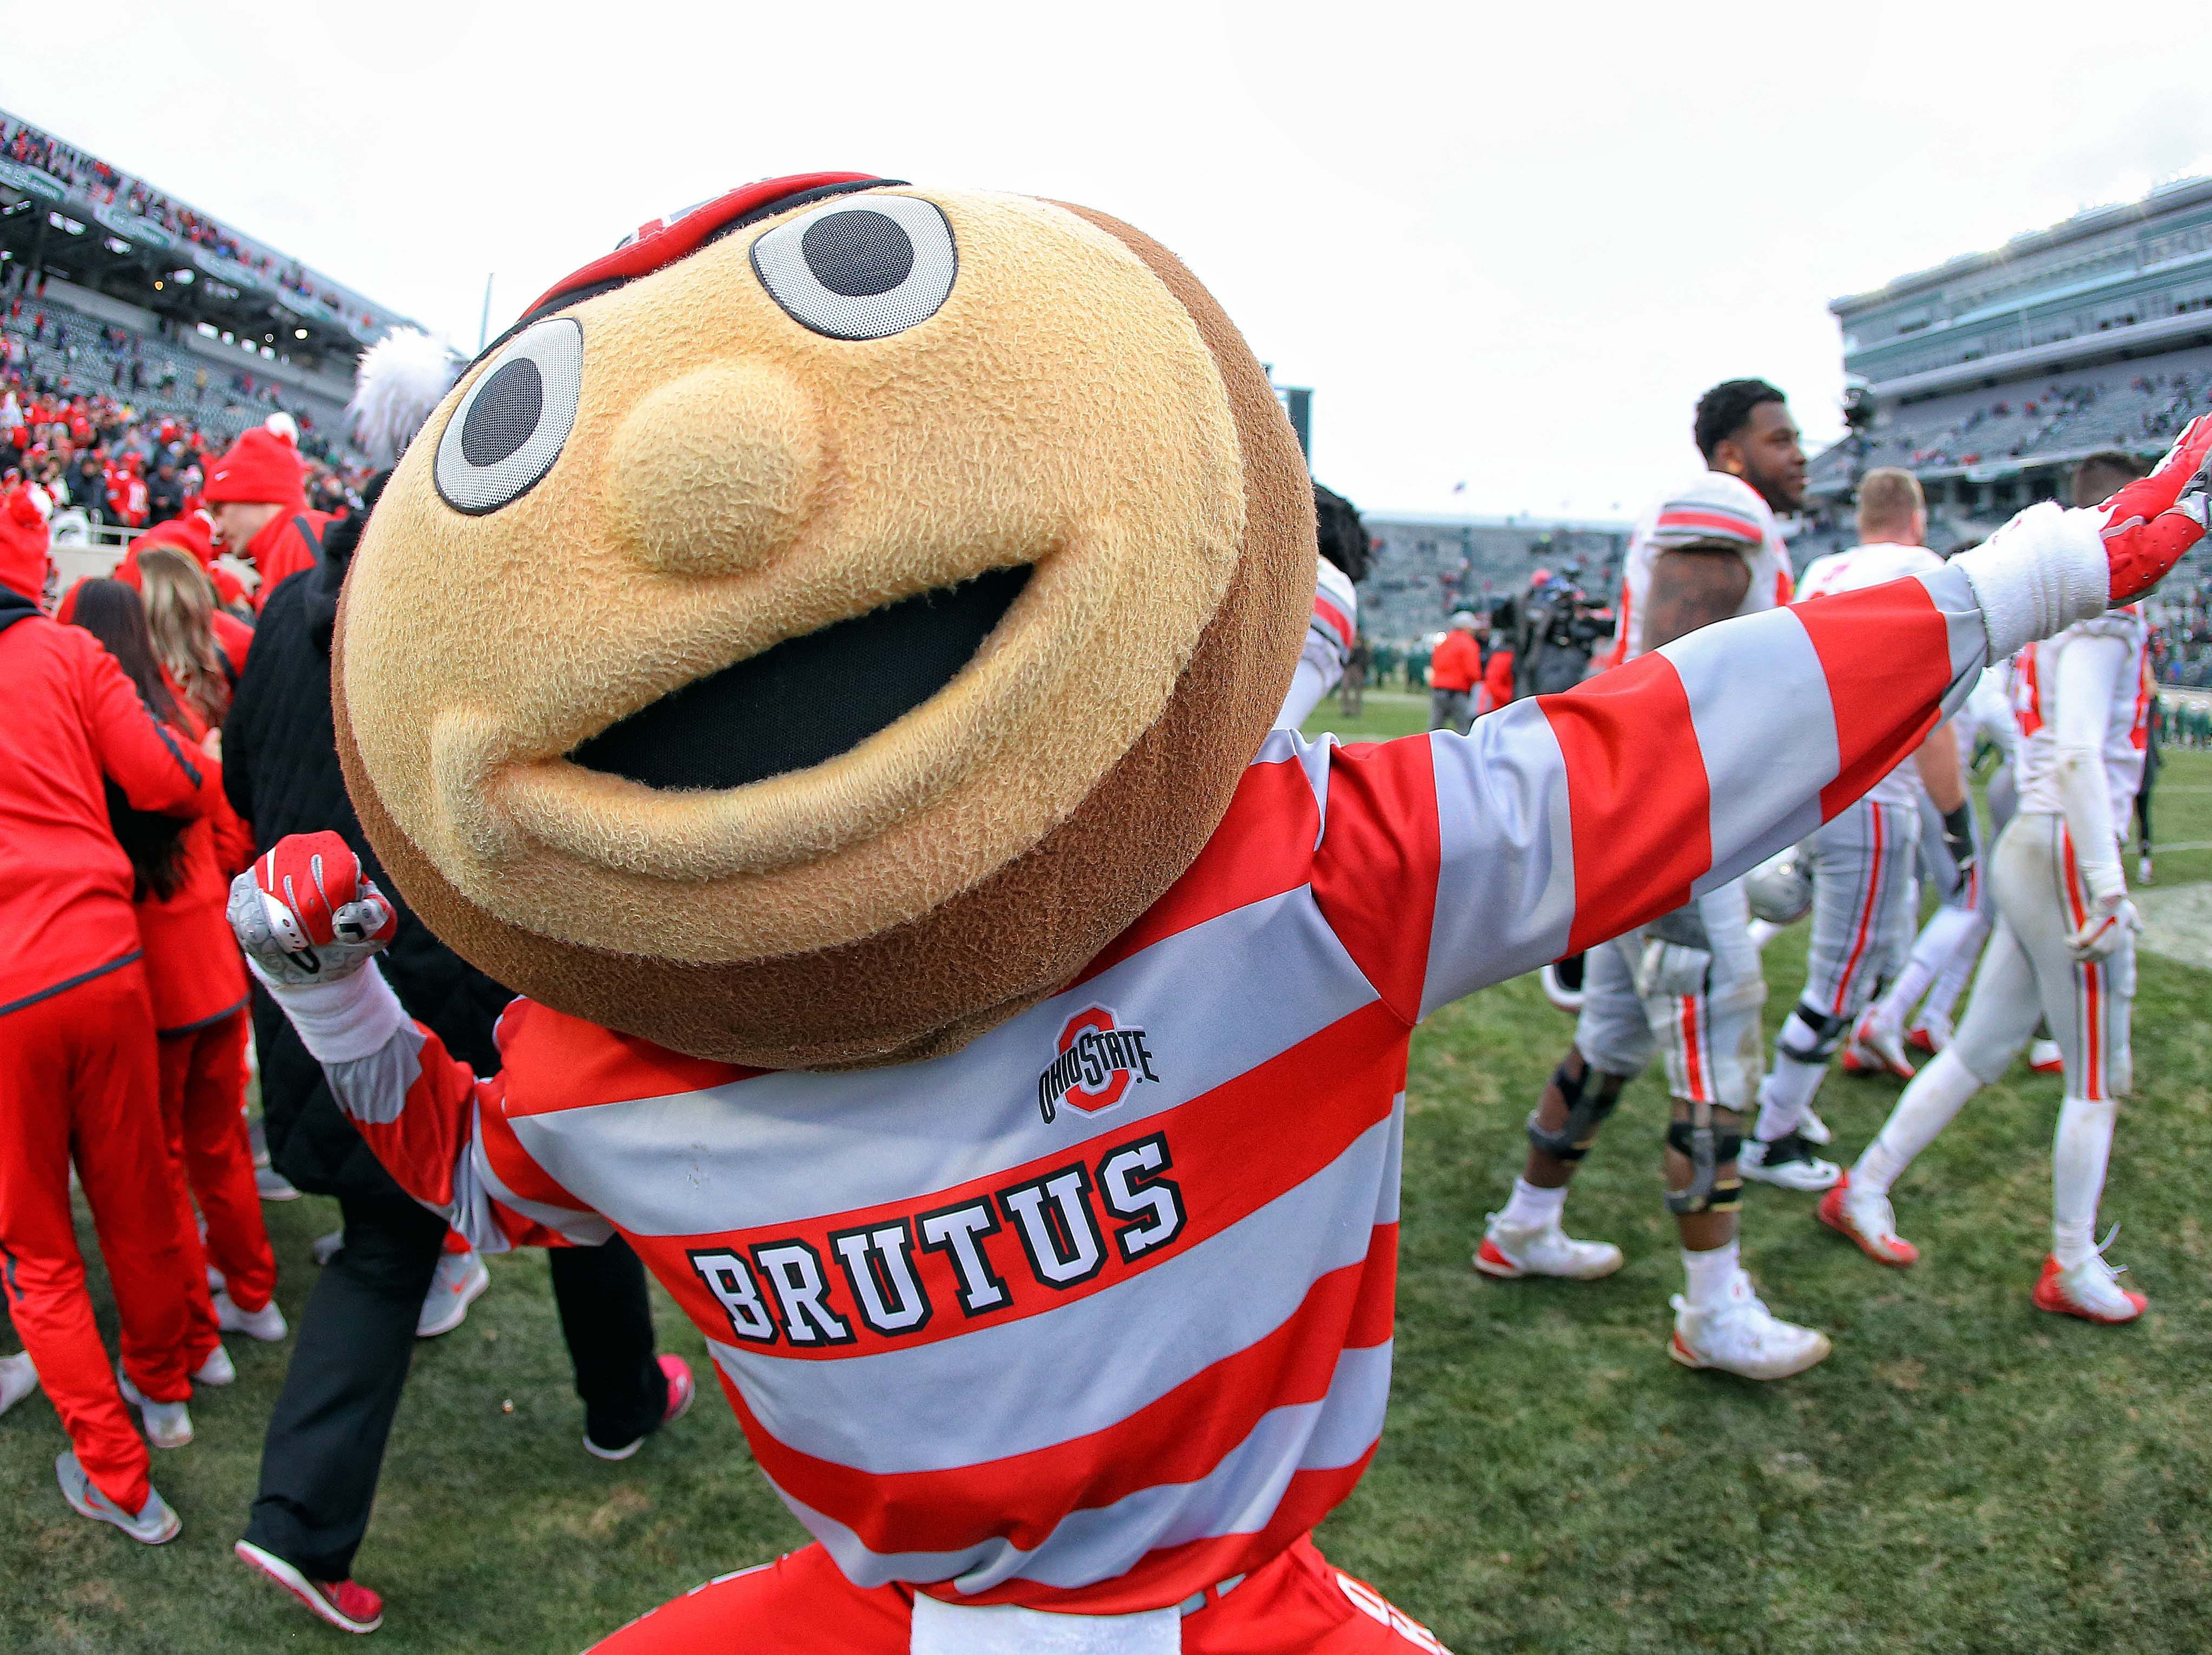 Week 11: The Ohio State Buckeyes mascot celebrates a win over the Michigan State Spartans.